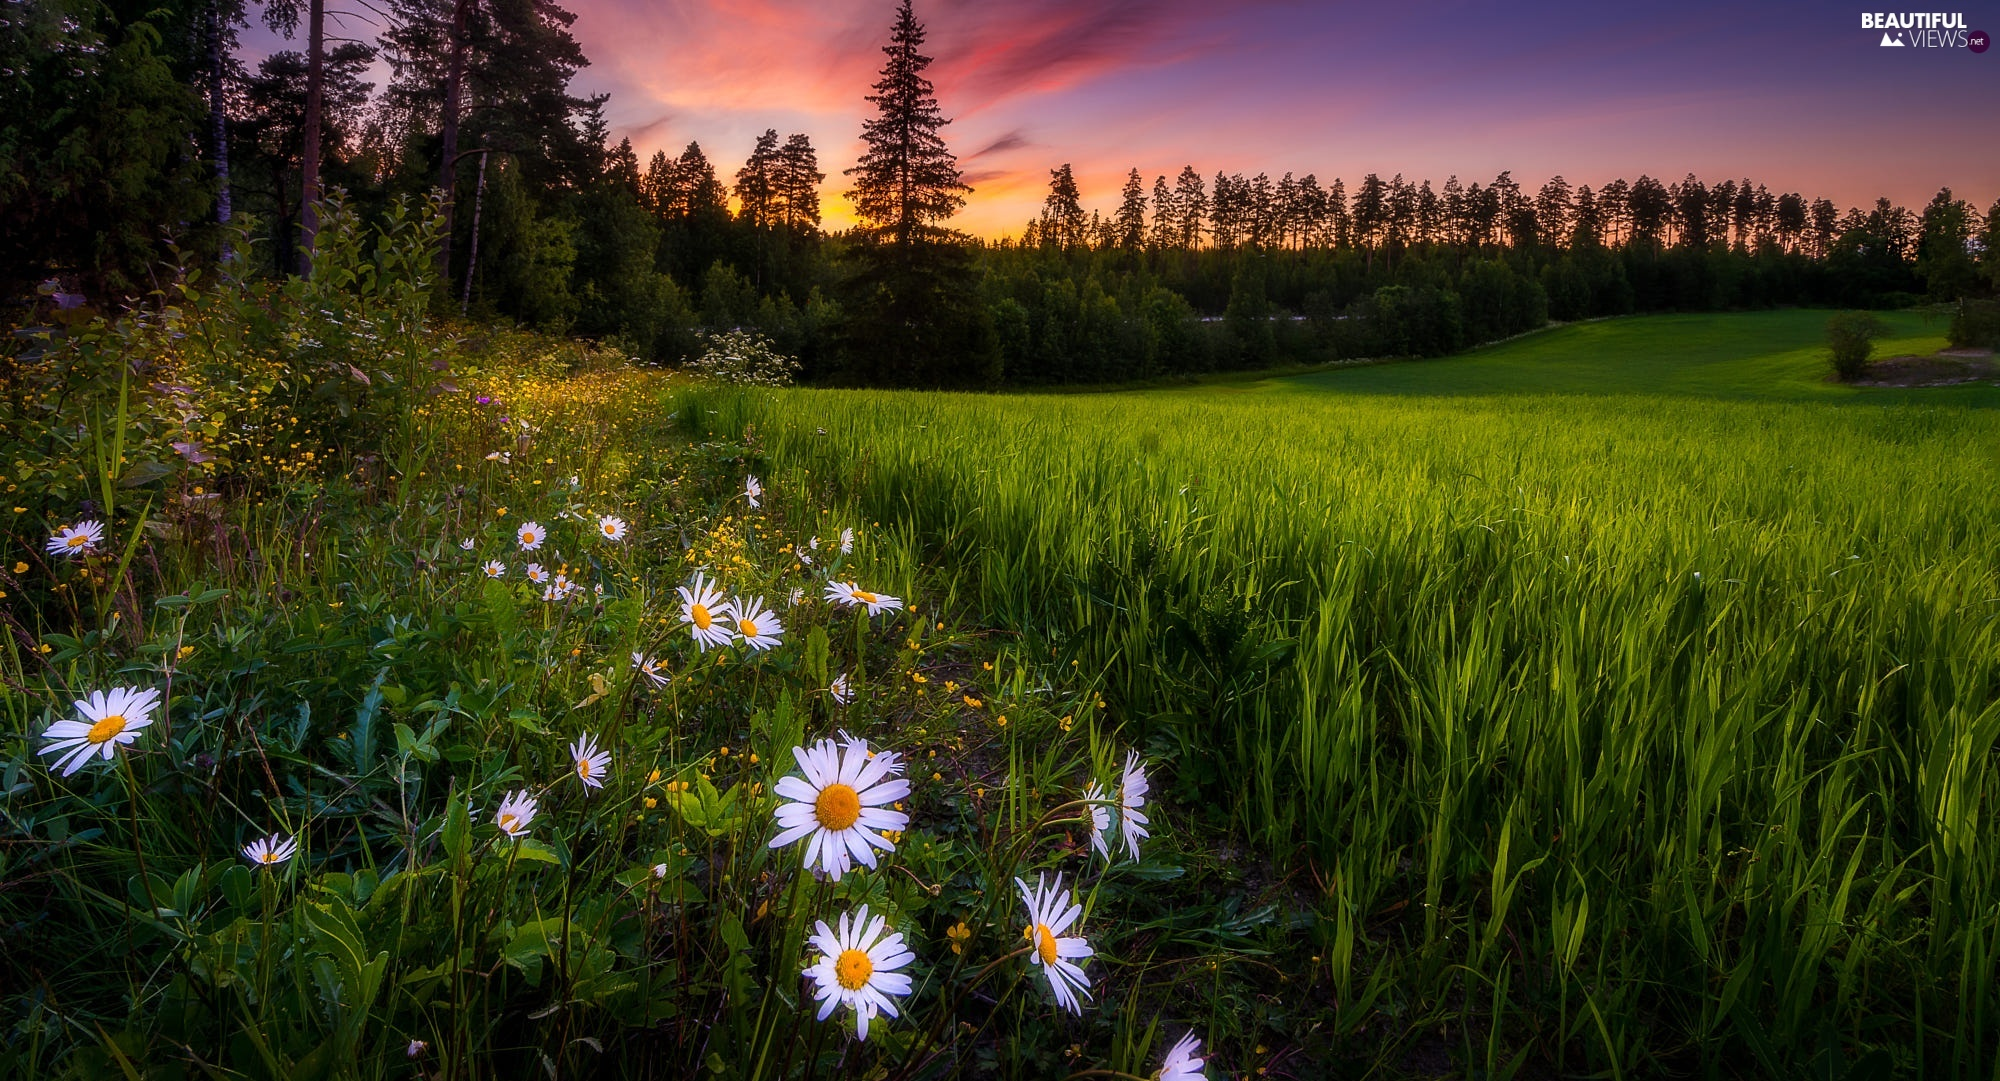 Flowers, trees, daisy, grass, Meadow, viewes